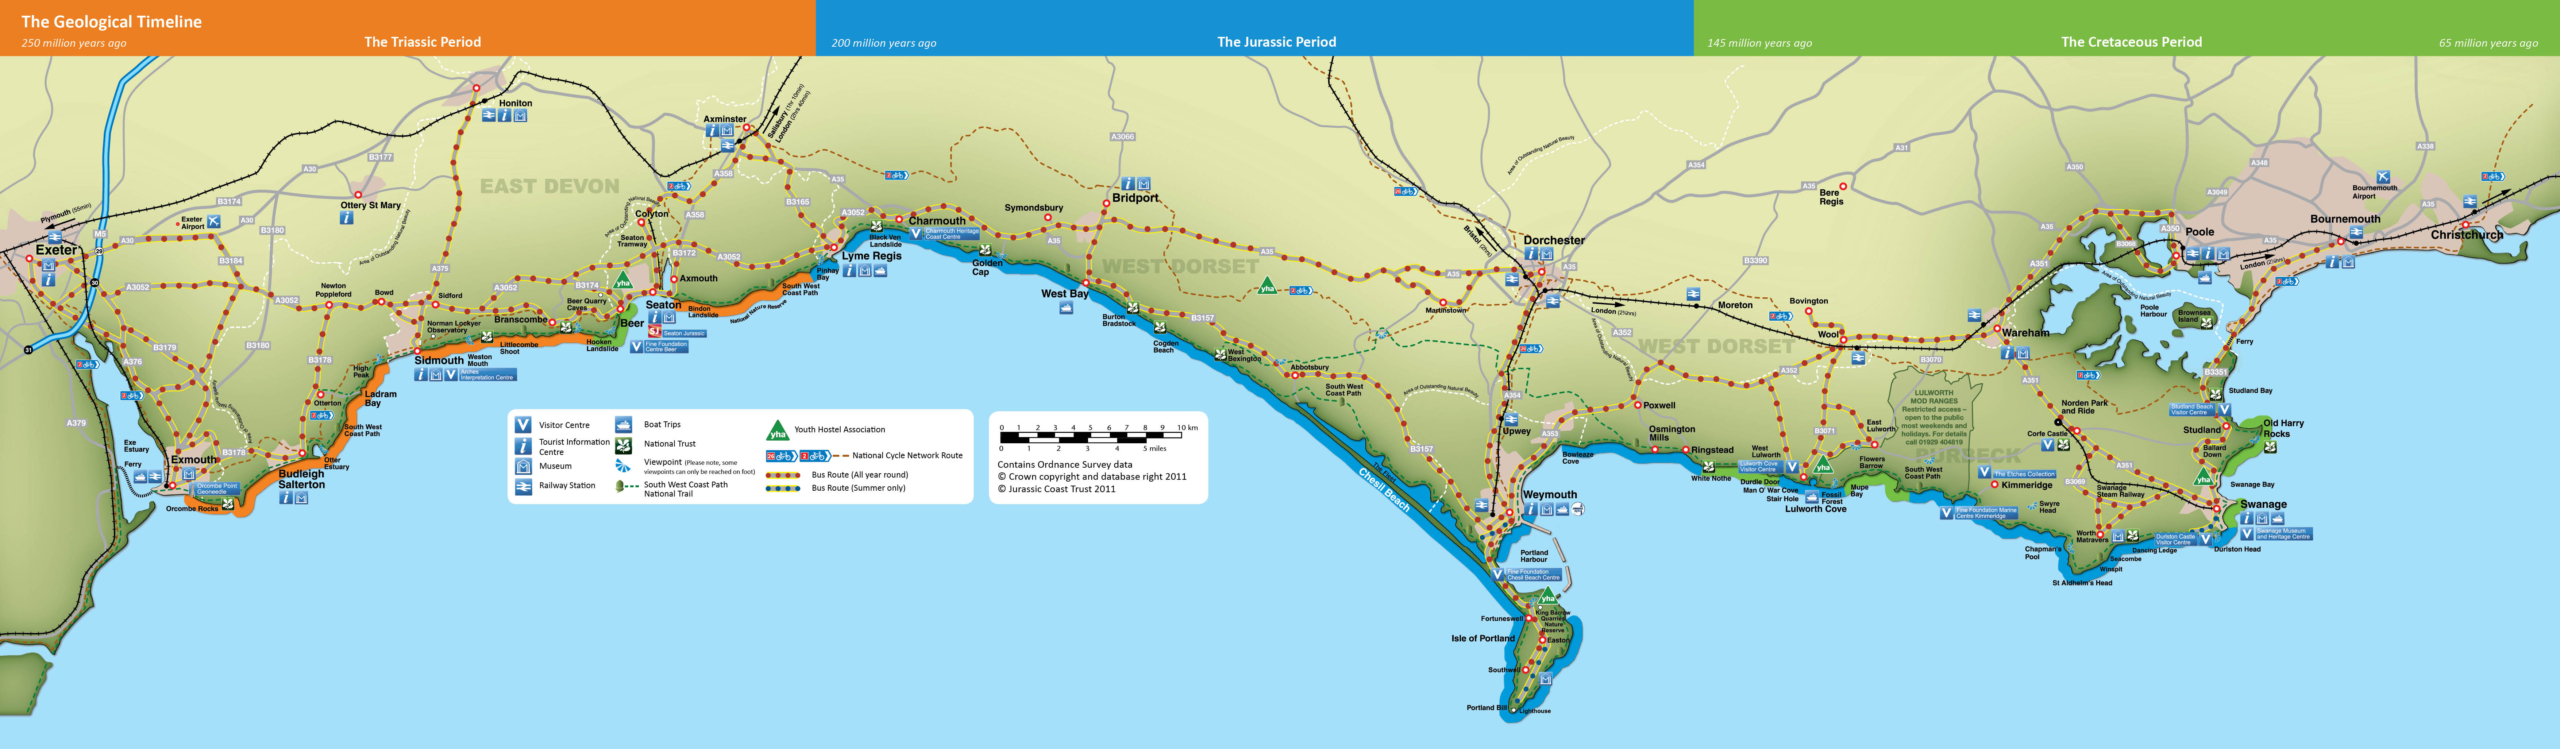 Jurassic Coast Map - Jurassic Coast World Heritage Site